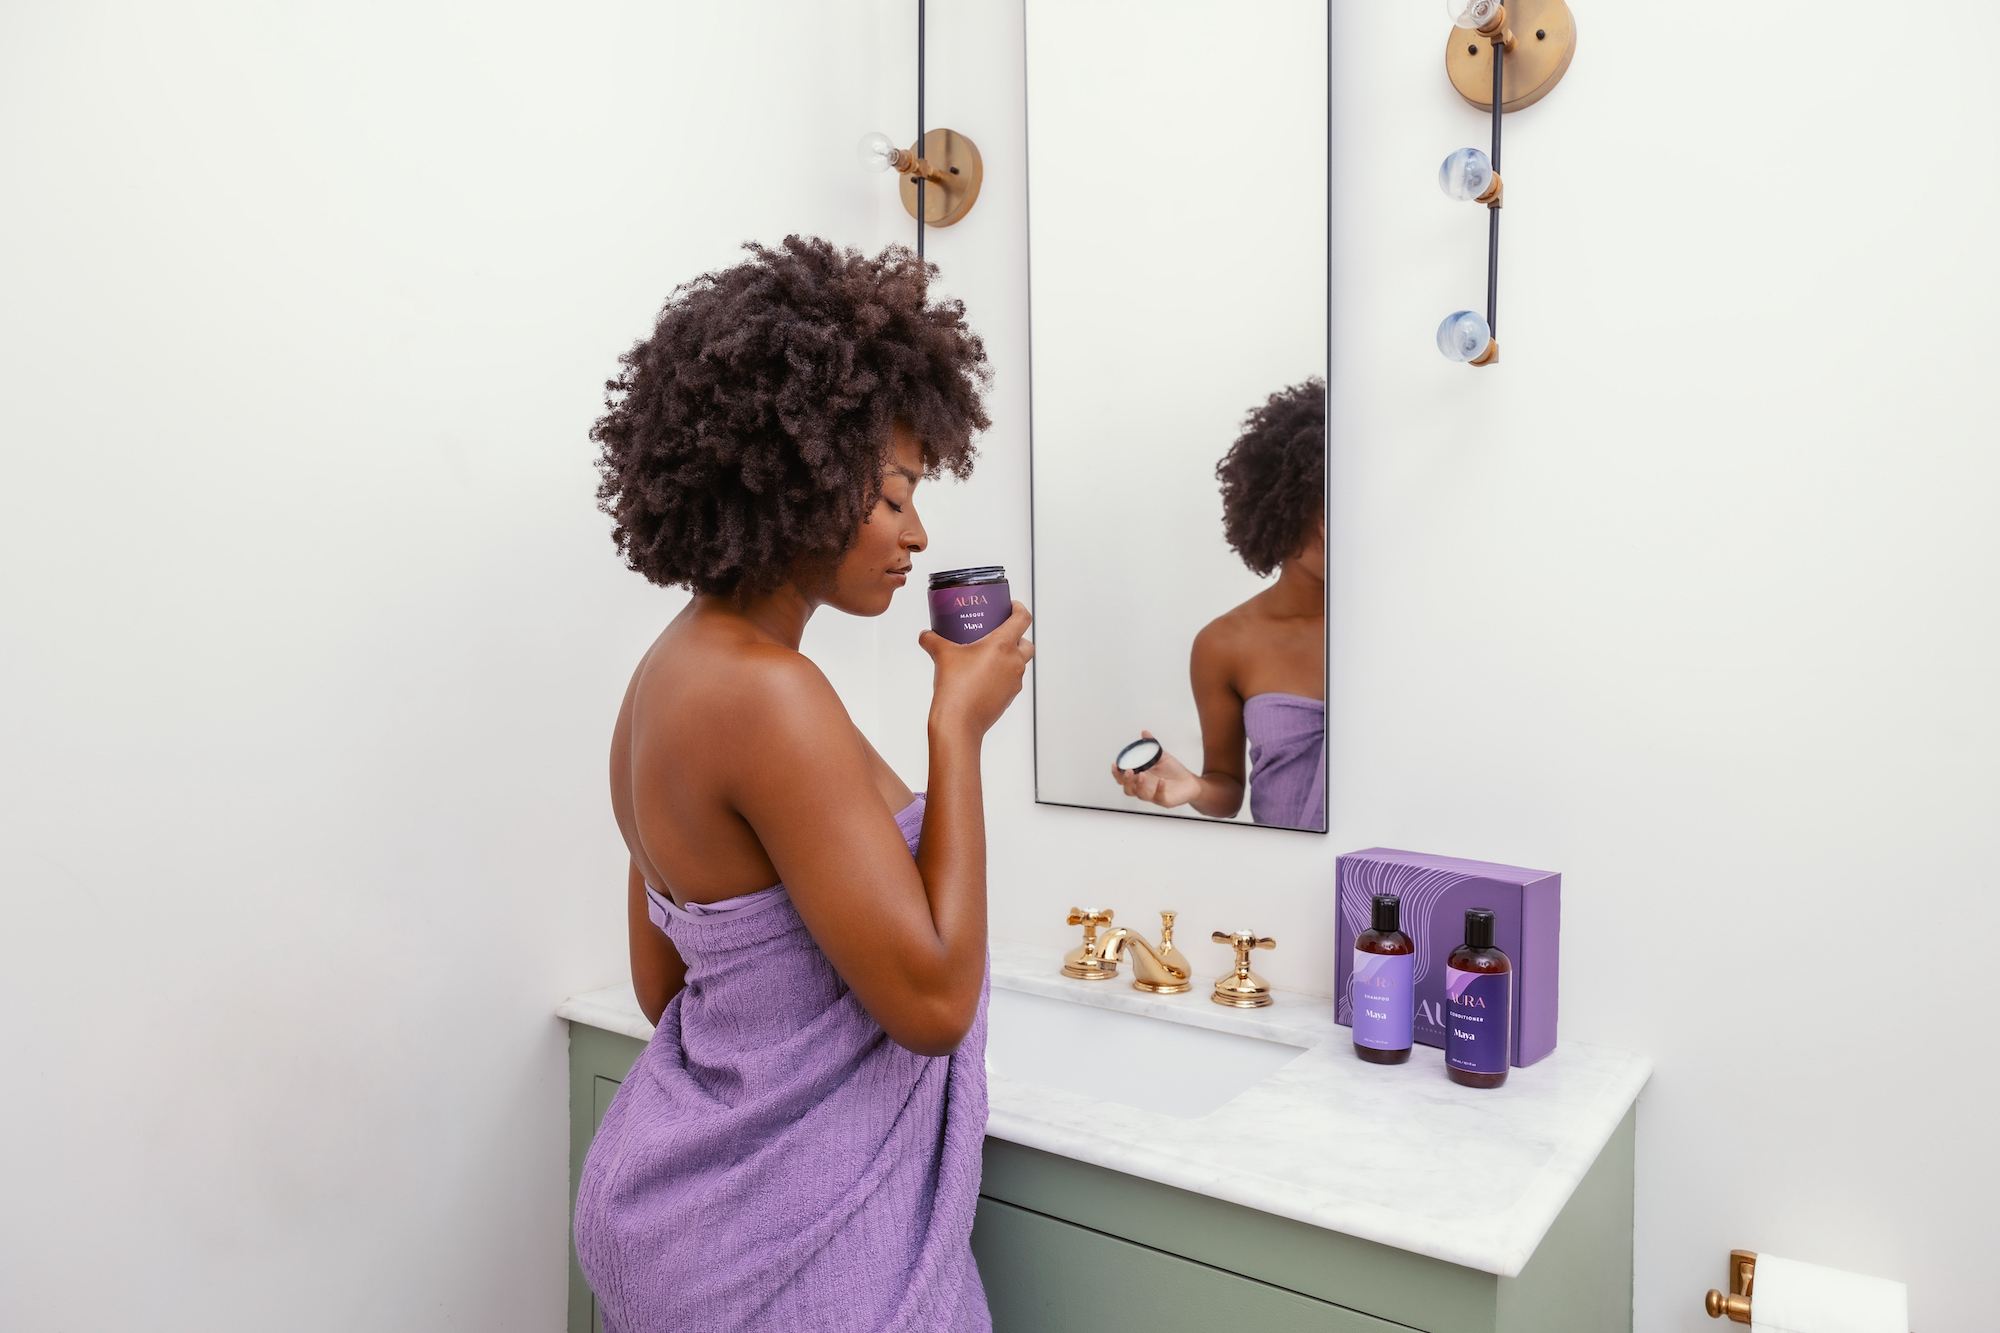 AURA client getting ready to use her personalized Ritual complete with Shampoo, Conditioner, and hair Masque while enjoying her optional aroma.